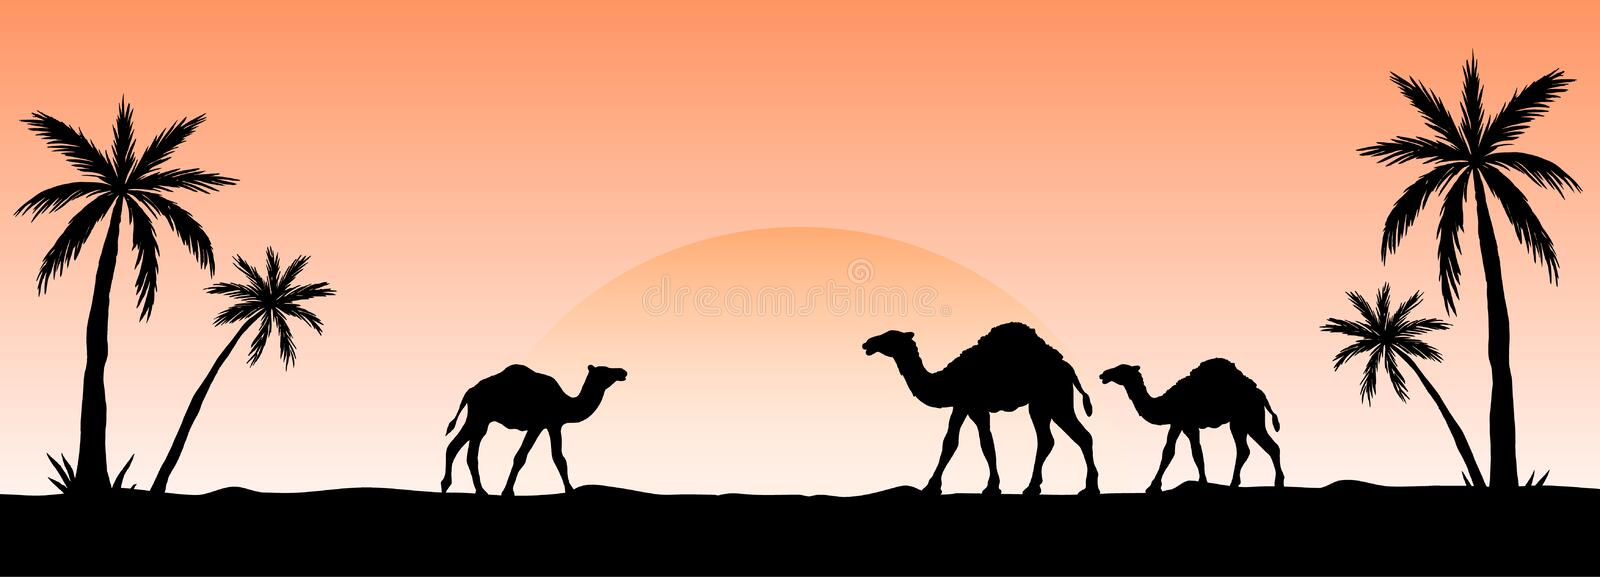 Silhouette of camel caravan going through the desert. Vector illustration for islamic background, poster, calendar, banners, royalty free illustration